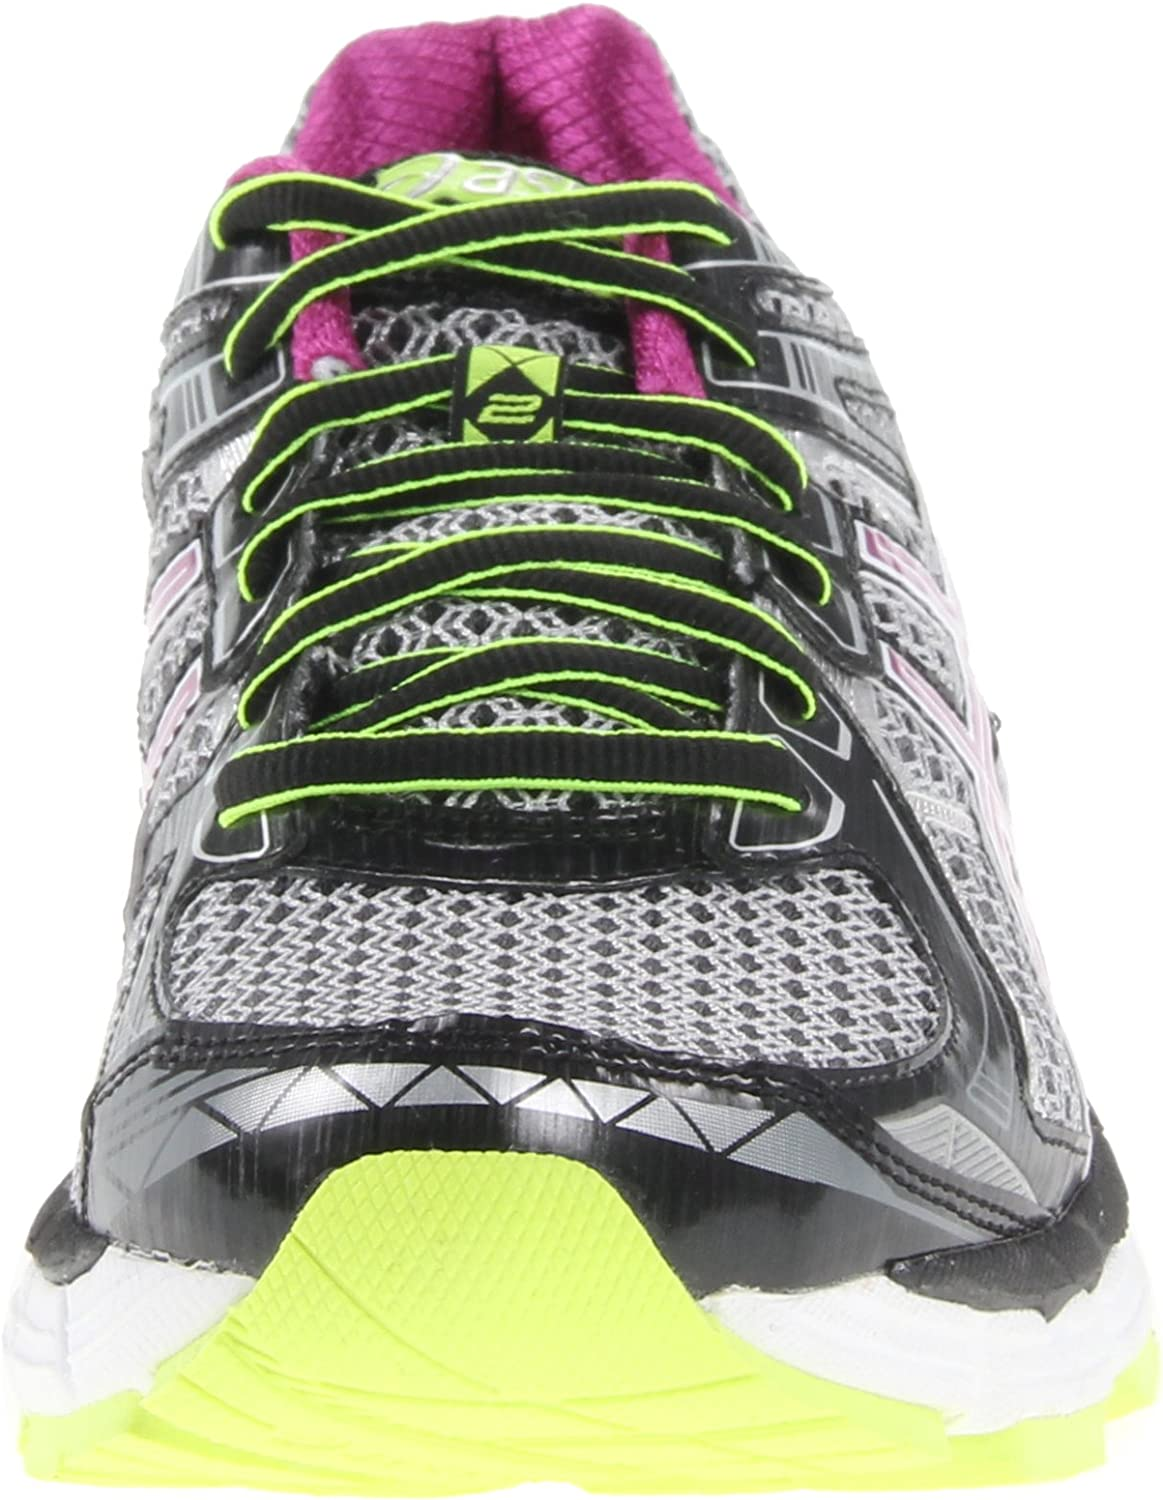 Inov-8 Women s Arctic Talon 275 Trail Runner